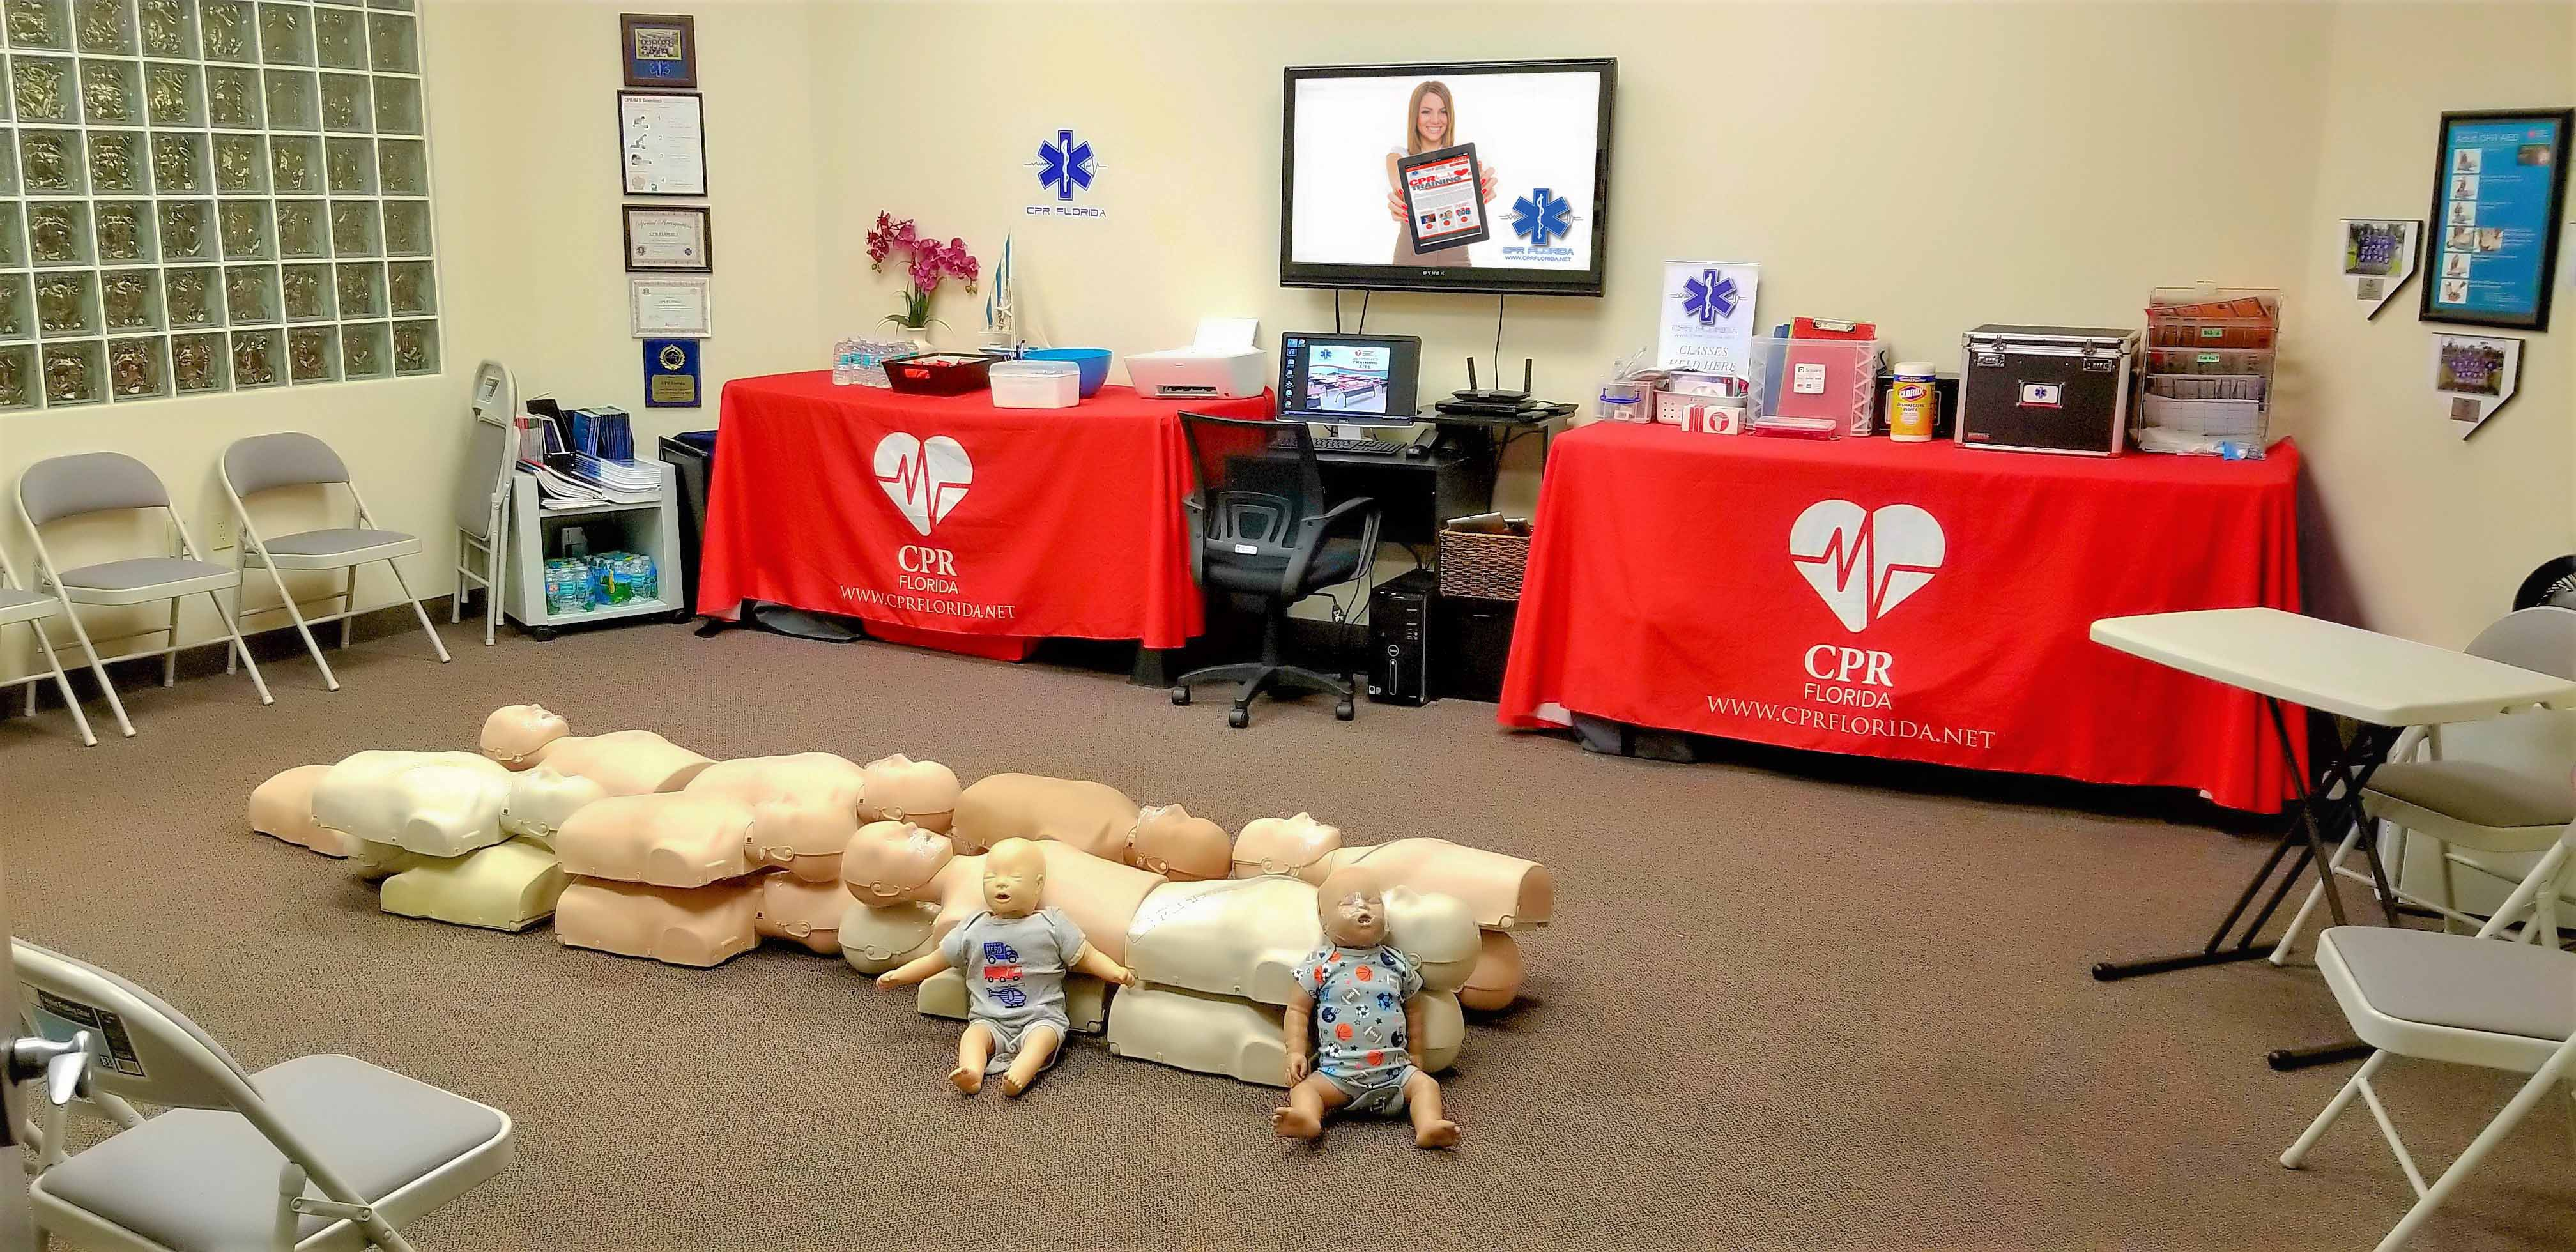 West Palm Beach cpr bls first aid certification classes